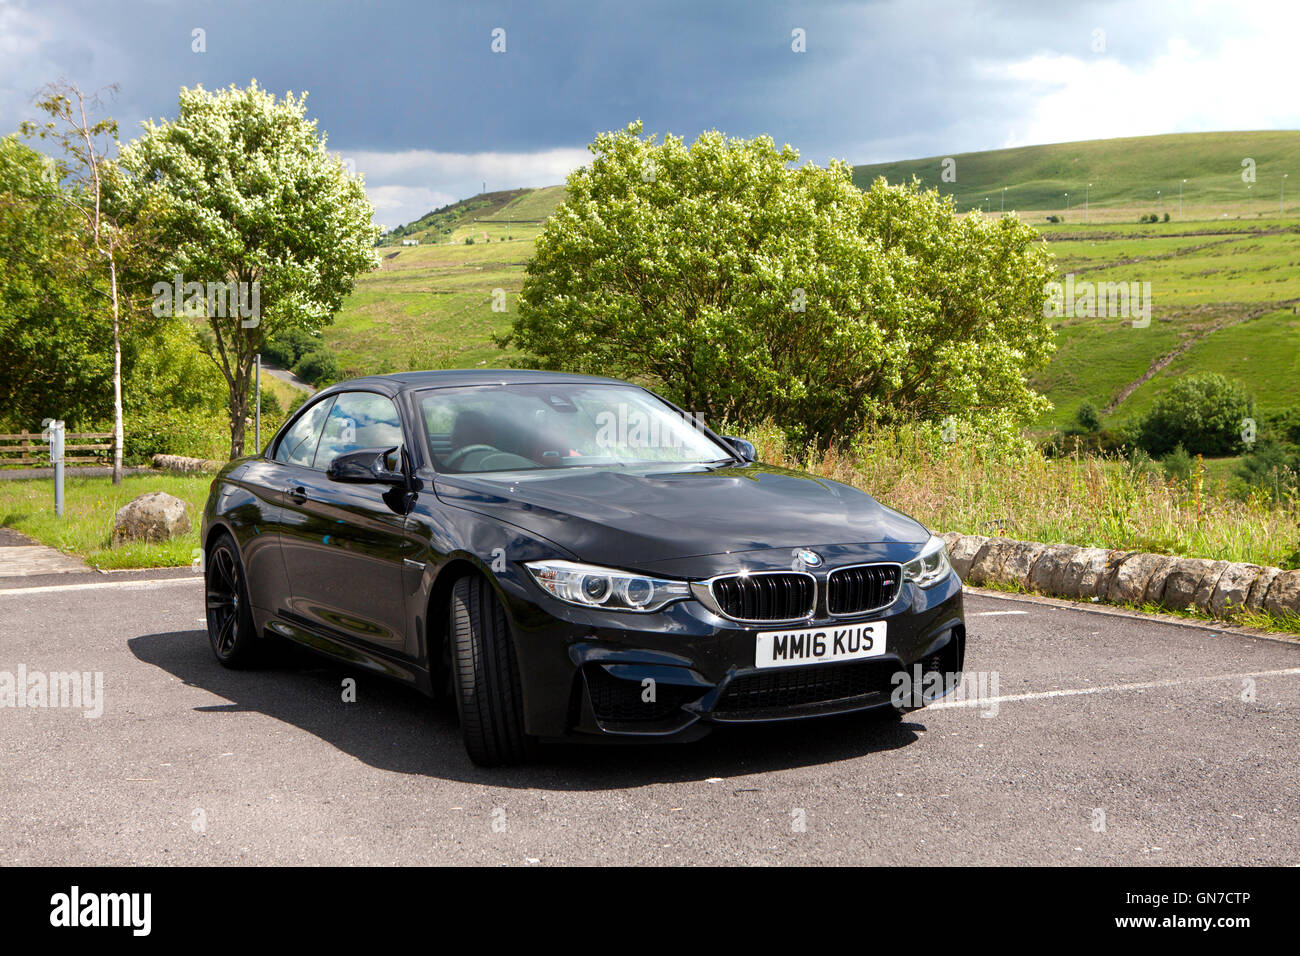 Bmw M4 High Resolution Stock Photography And Images Alamy